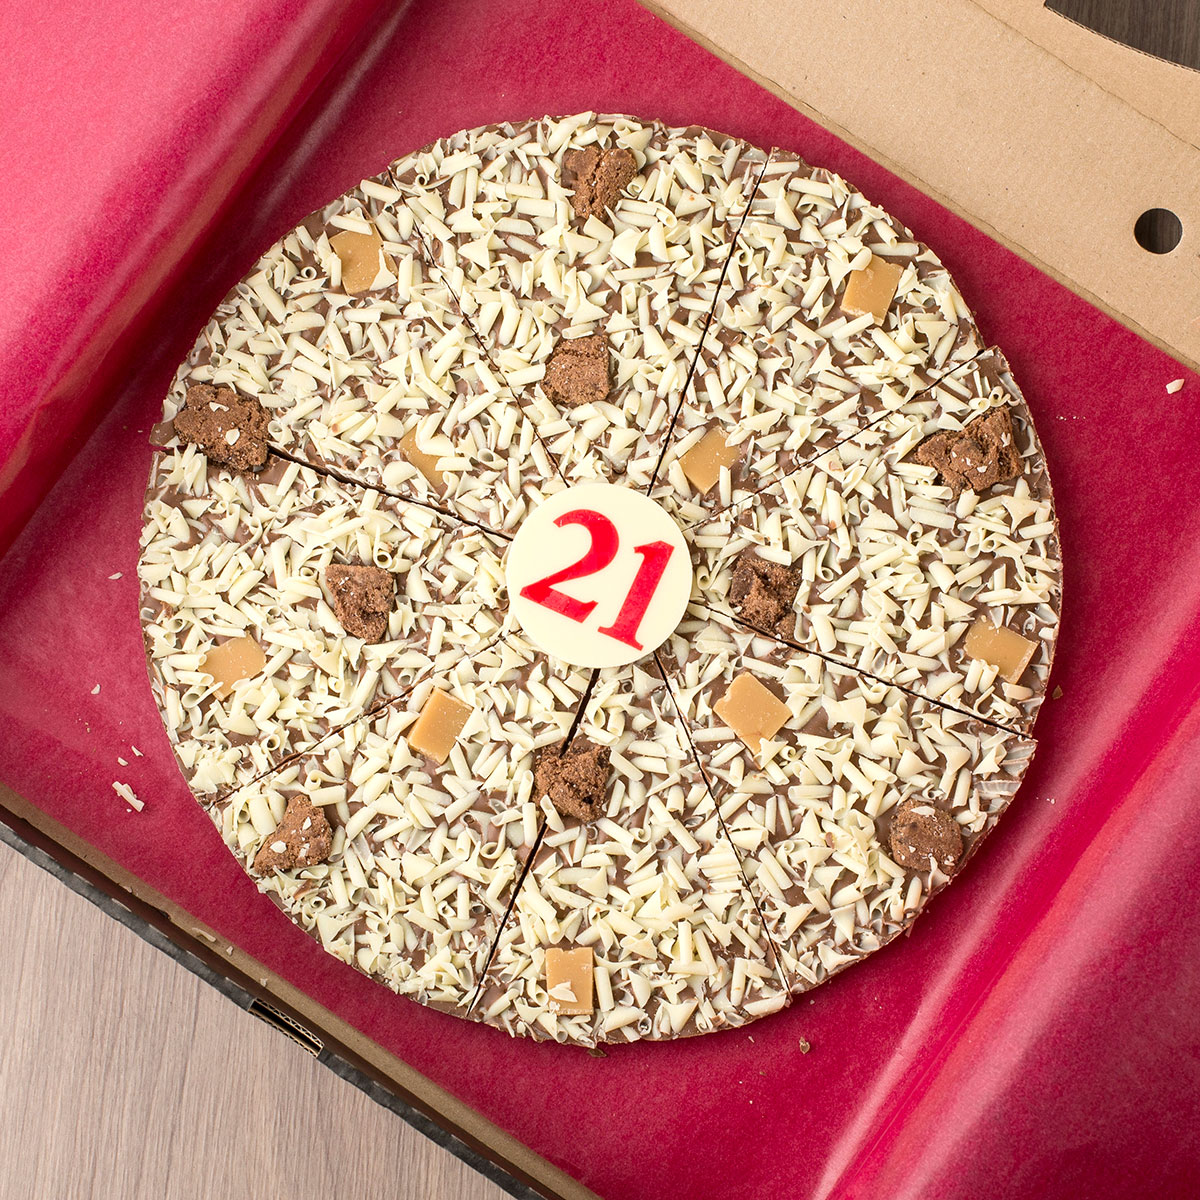 21st Birthday Chocoholics Pizza - 21st gift